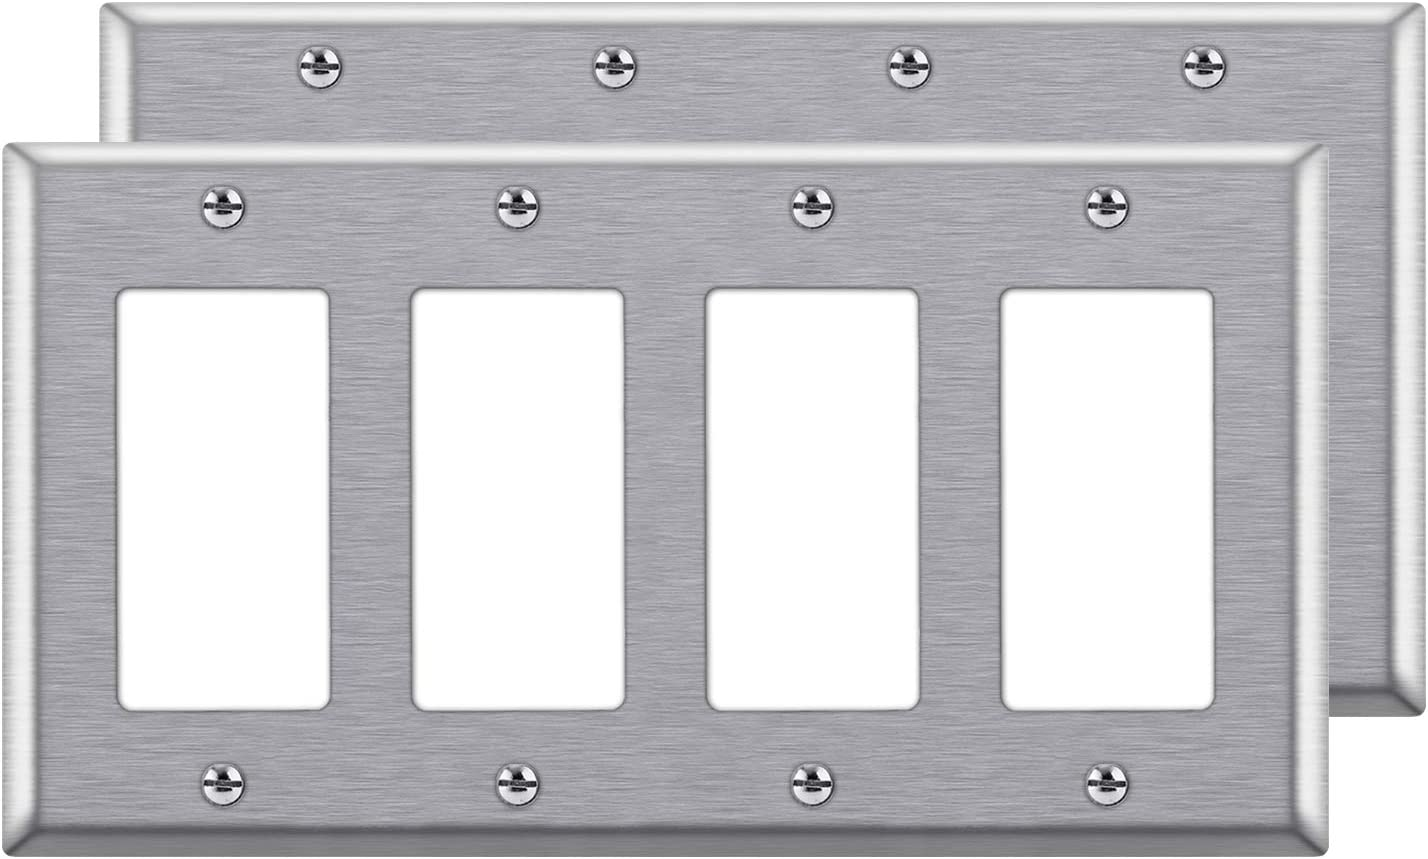 """[2 Pack] BESTTEN 4-Gang Decorator Metal Wall Plate, Standard Size 4.5"""" x 8.187"""", Stainless Steel Outlet Cover, UL listed, Silver"""